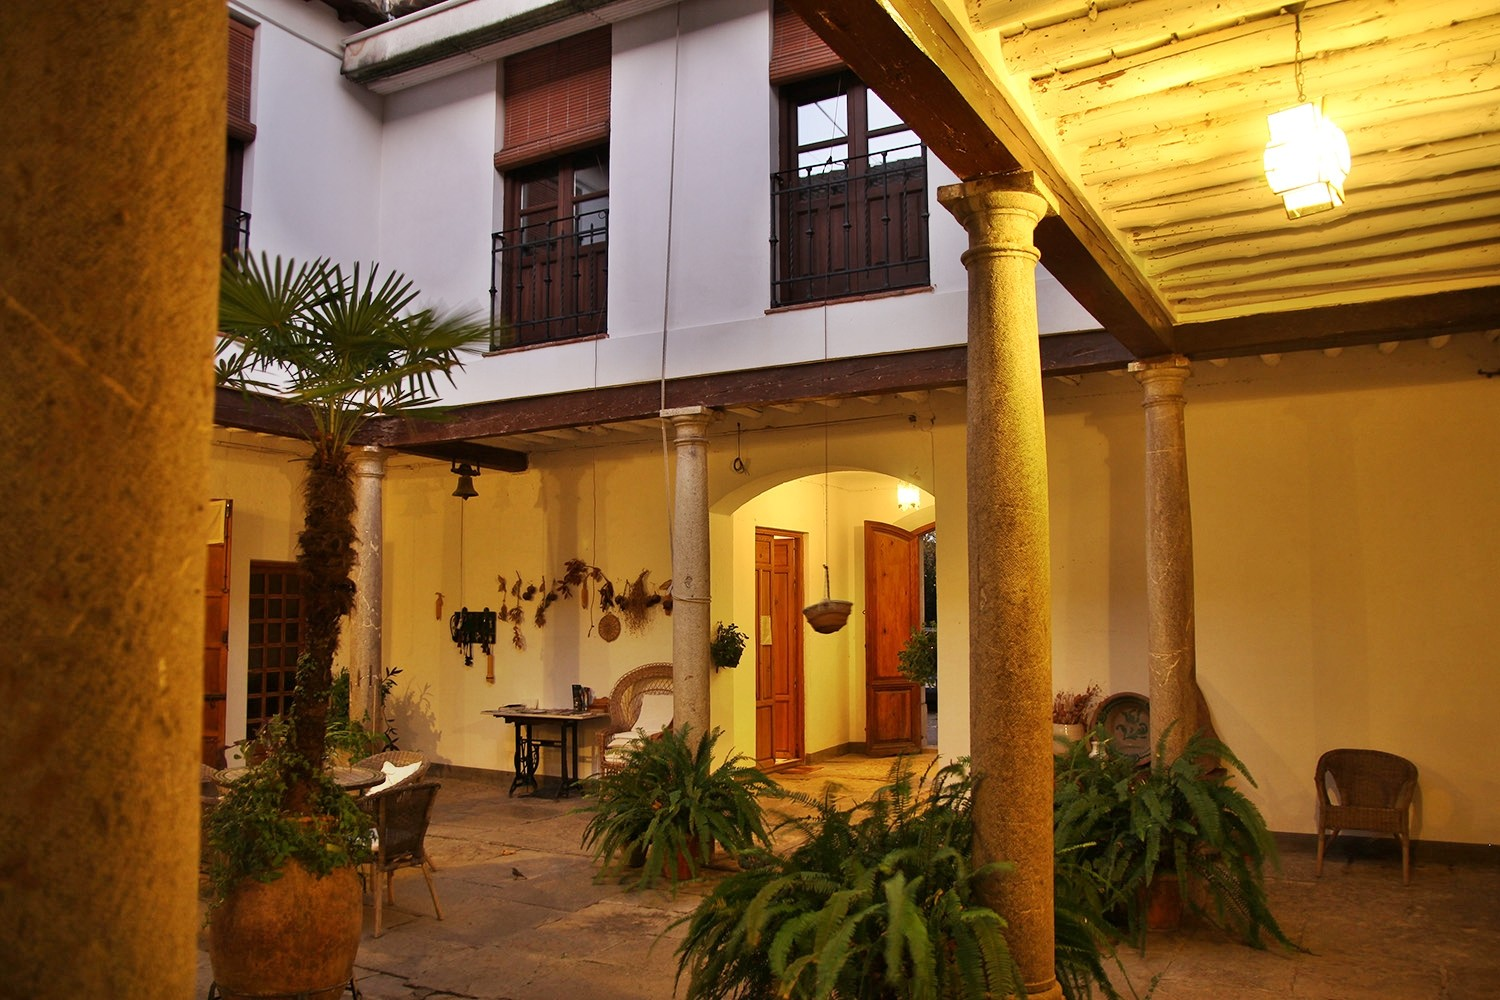 The courtyard by night